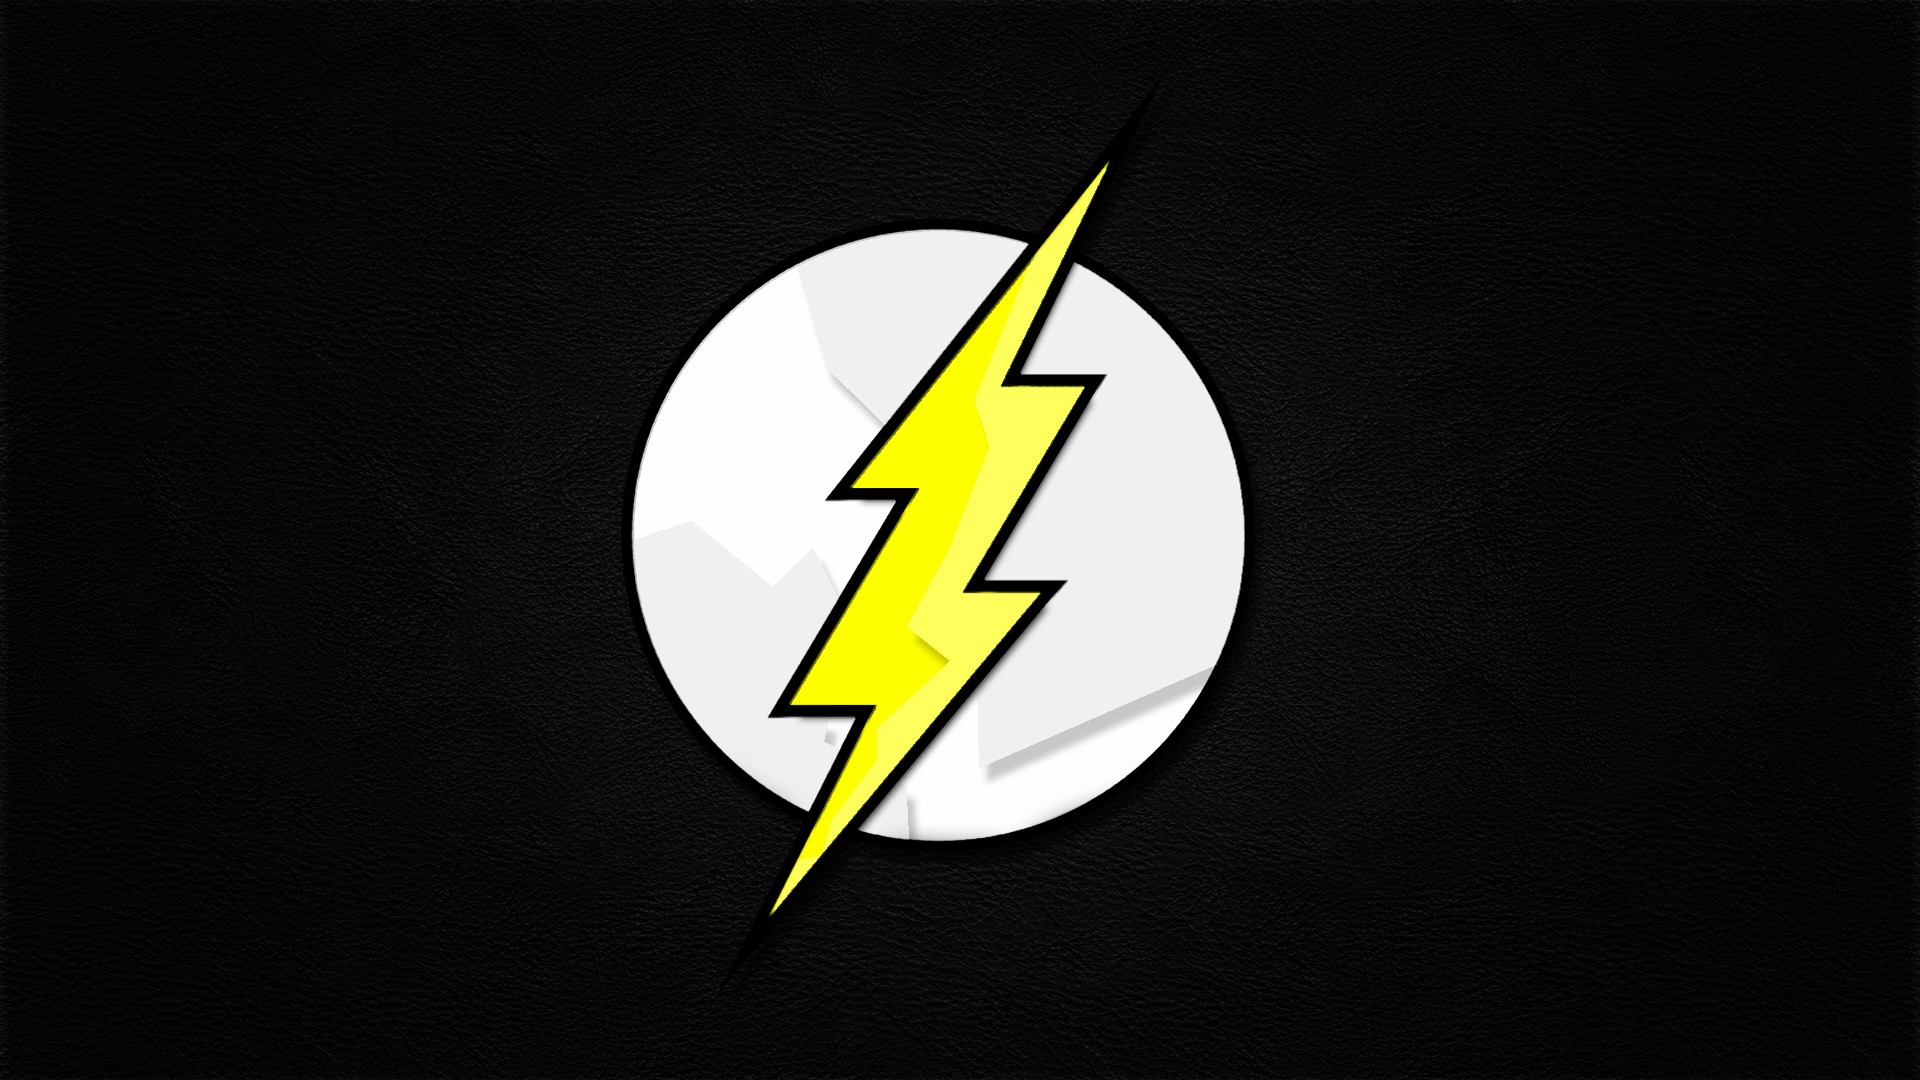 Comics comics The Flash logos Flash superhero wallpaper background 1920x1080